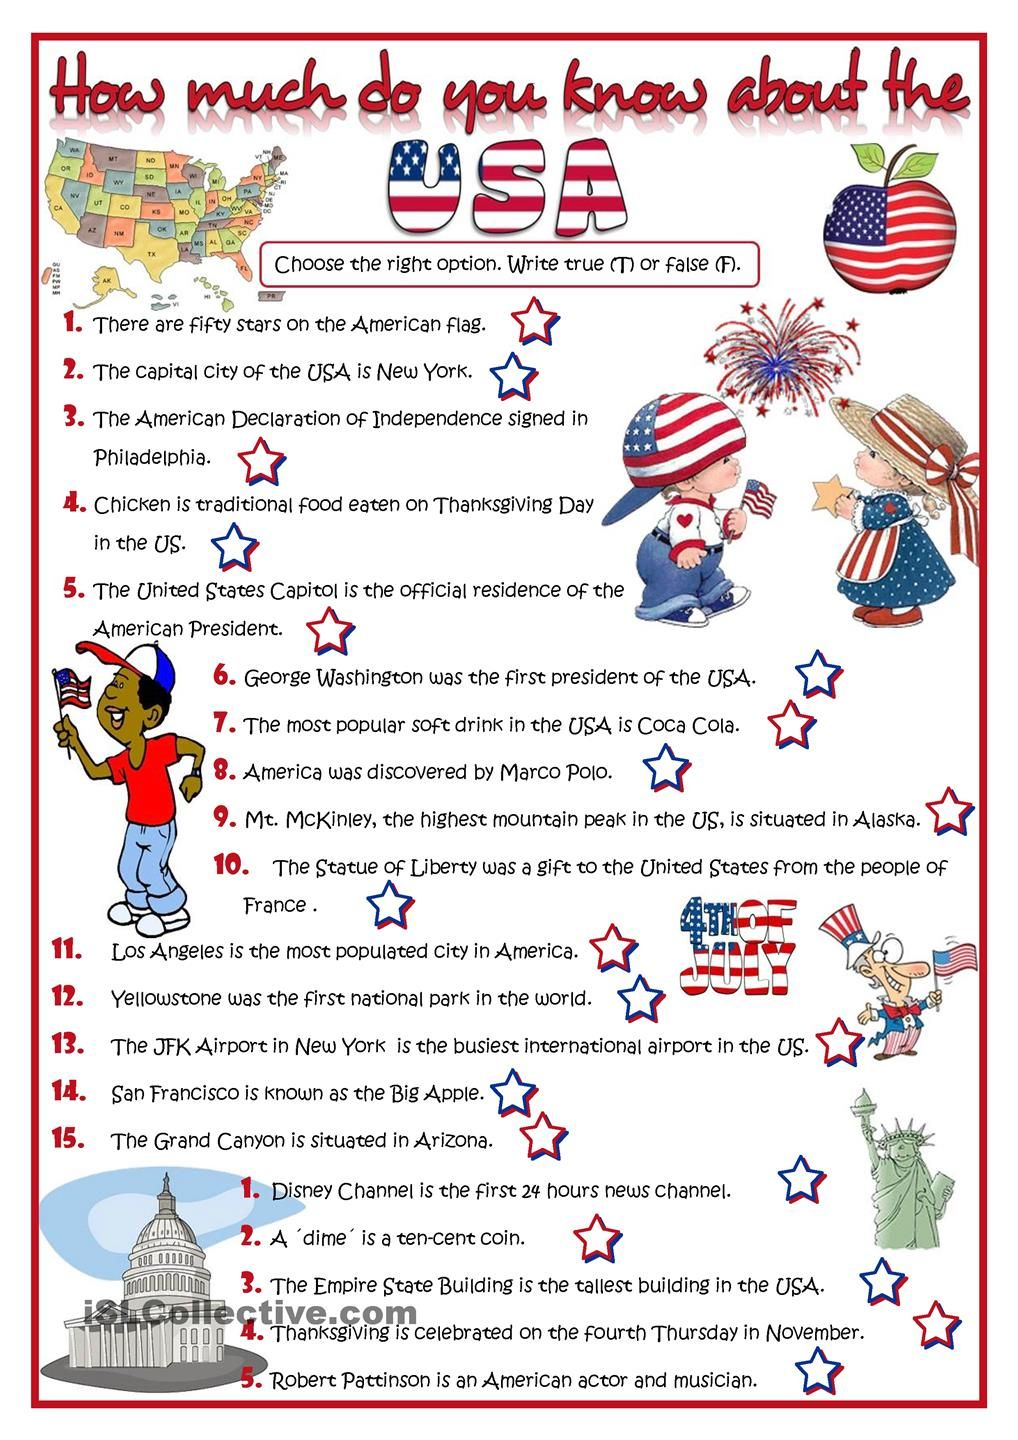 How Much Do You Know About The USA Quiz English Pinterest - States and capitals of the usa quiz